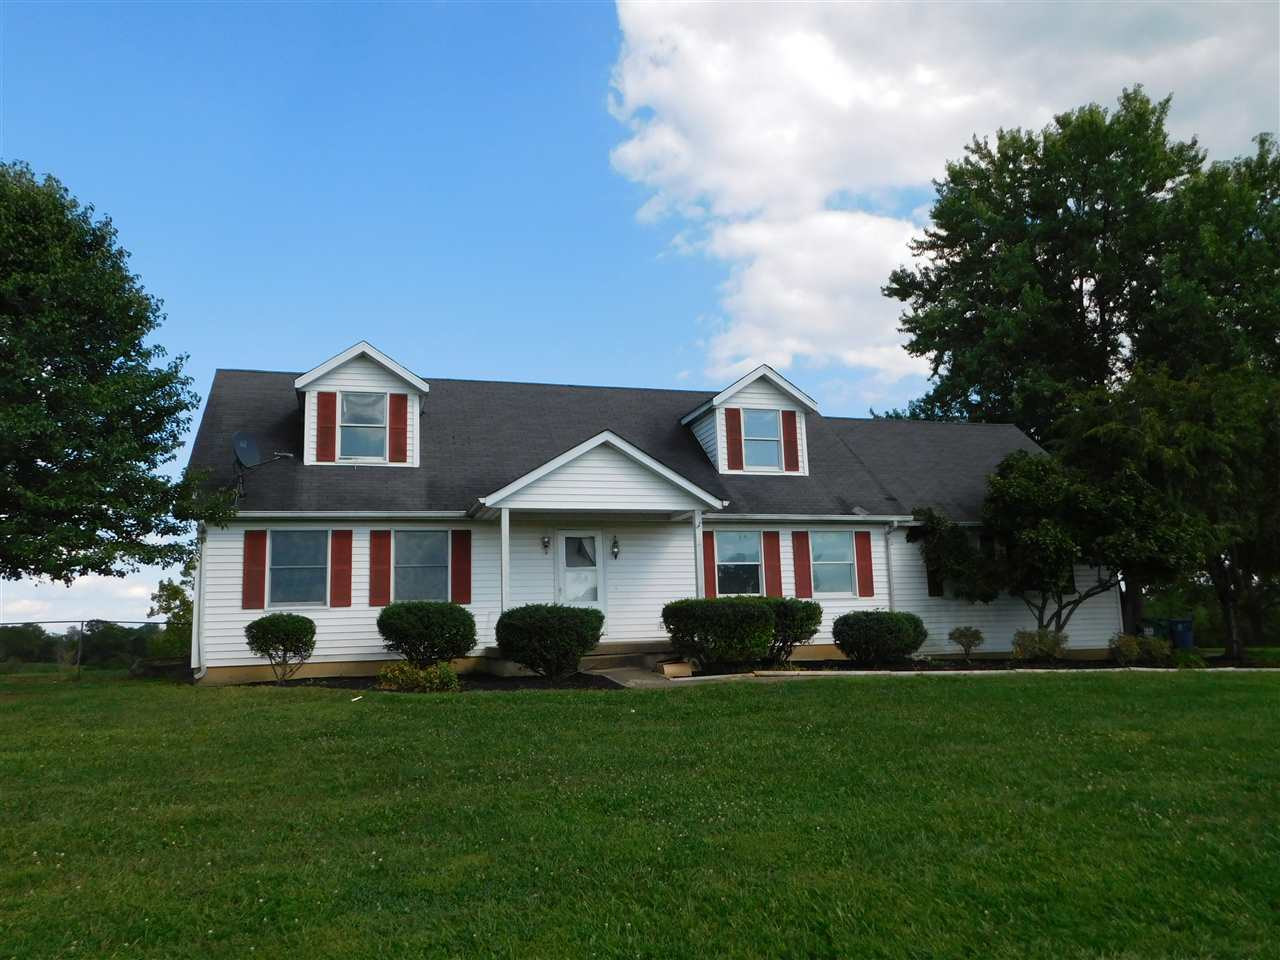 Photo 1 for 580 Mulligan Dry Ridge, KY 41035